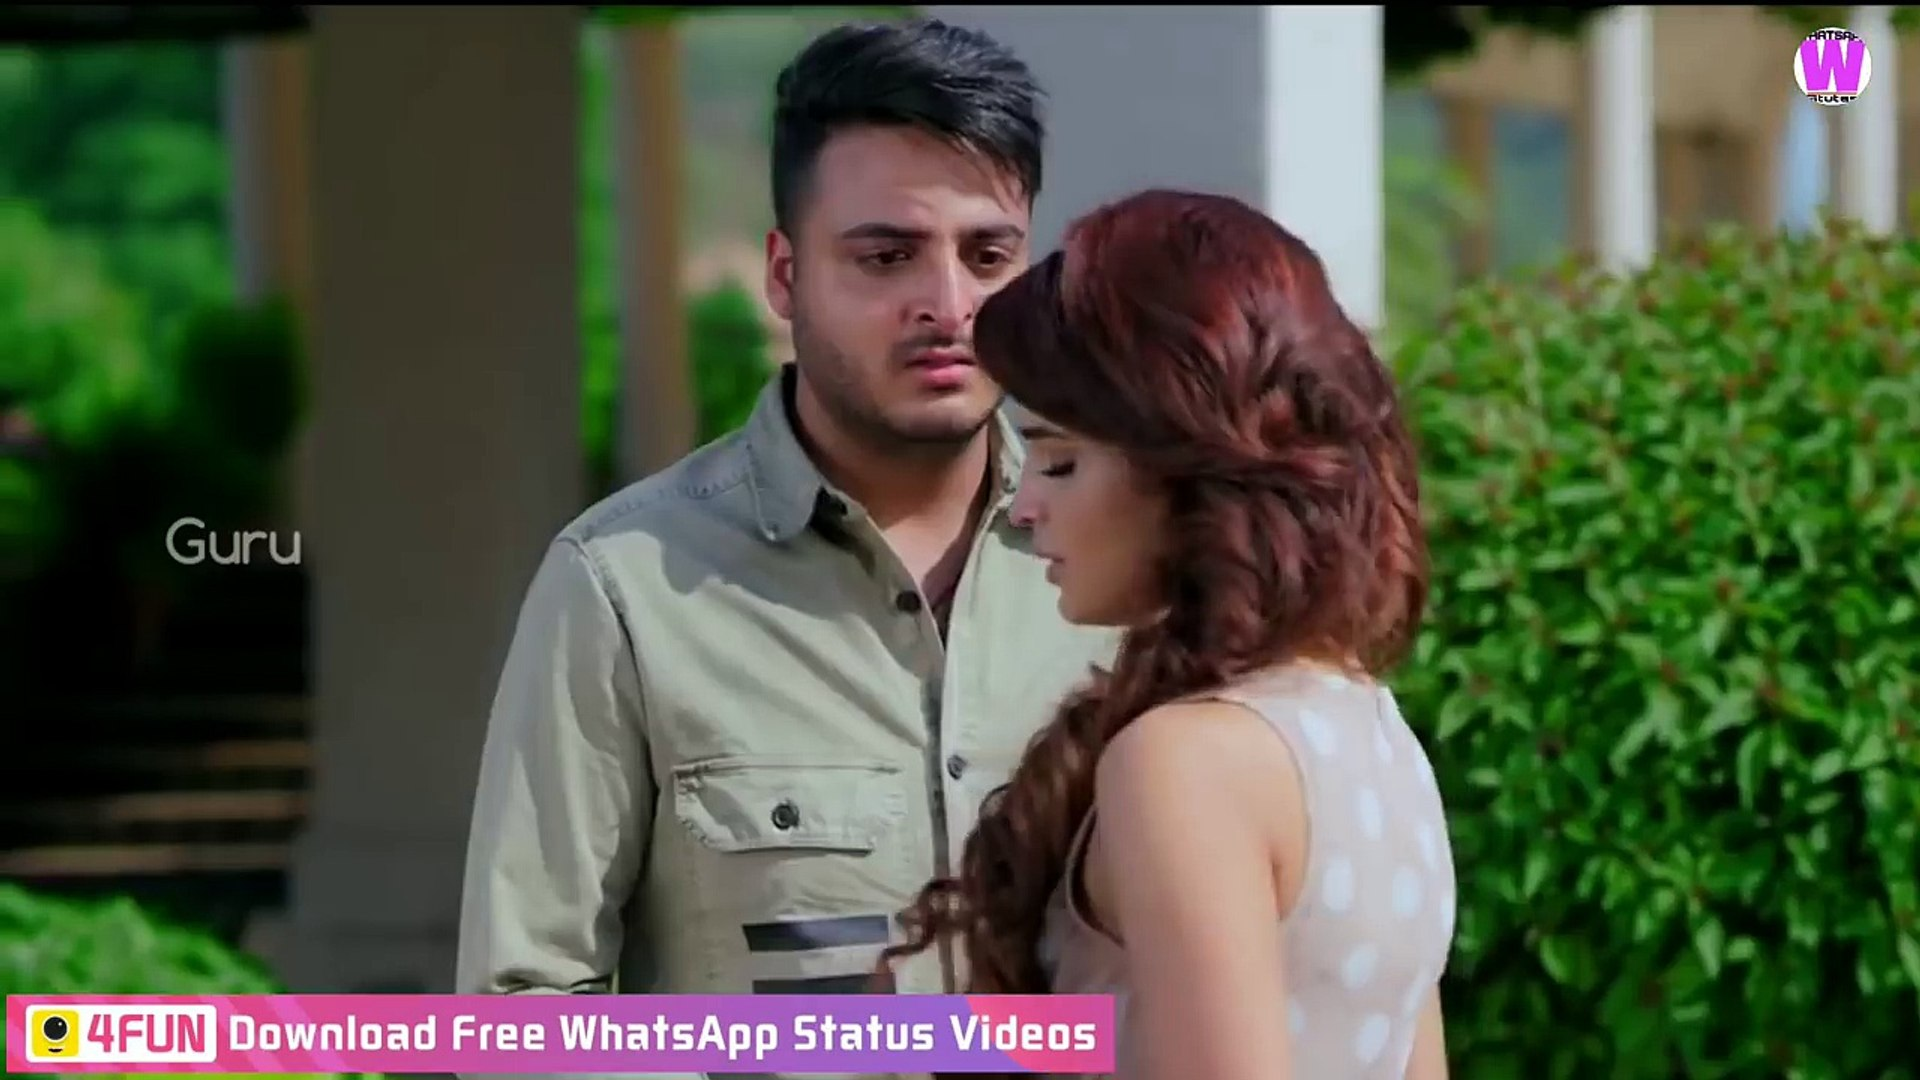 New Whatsapp Status Video 2018 Heart Very Sad Scene I Hate U Emotional Whatsapp Status Video Love Never Endswhatsapp Sad Status Status Song Whatsapp Video Status Sad Song Whatsapp Videos